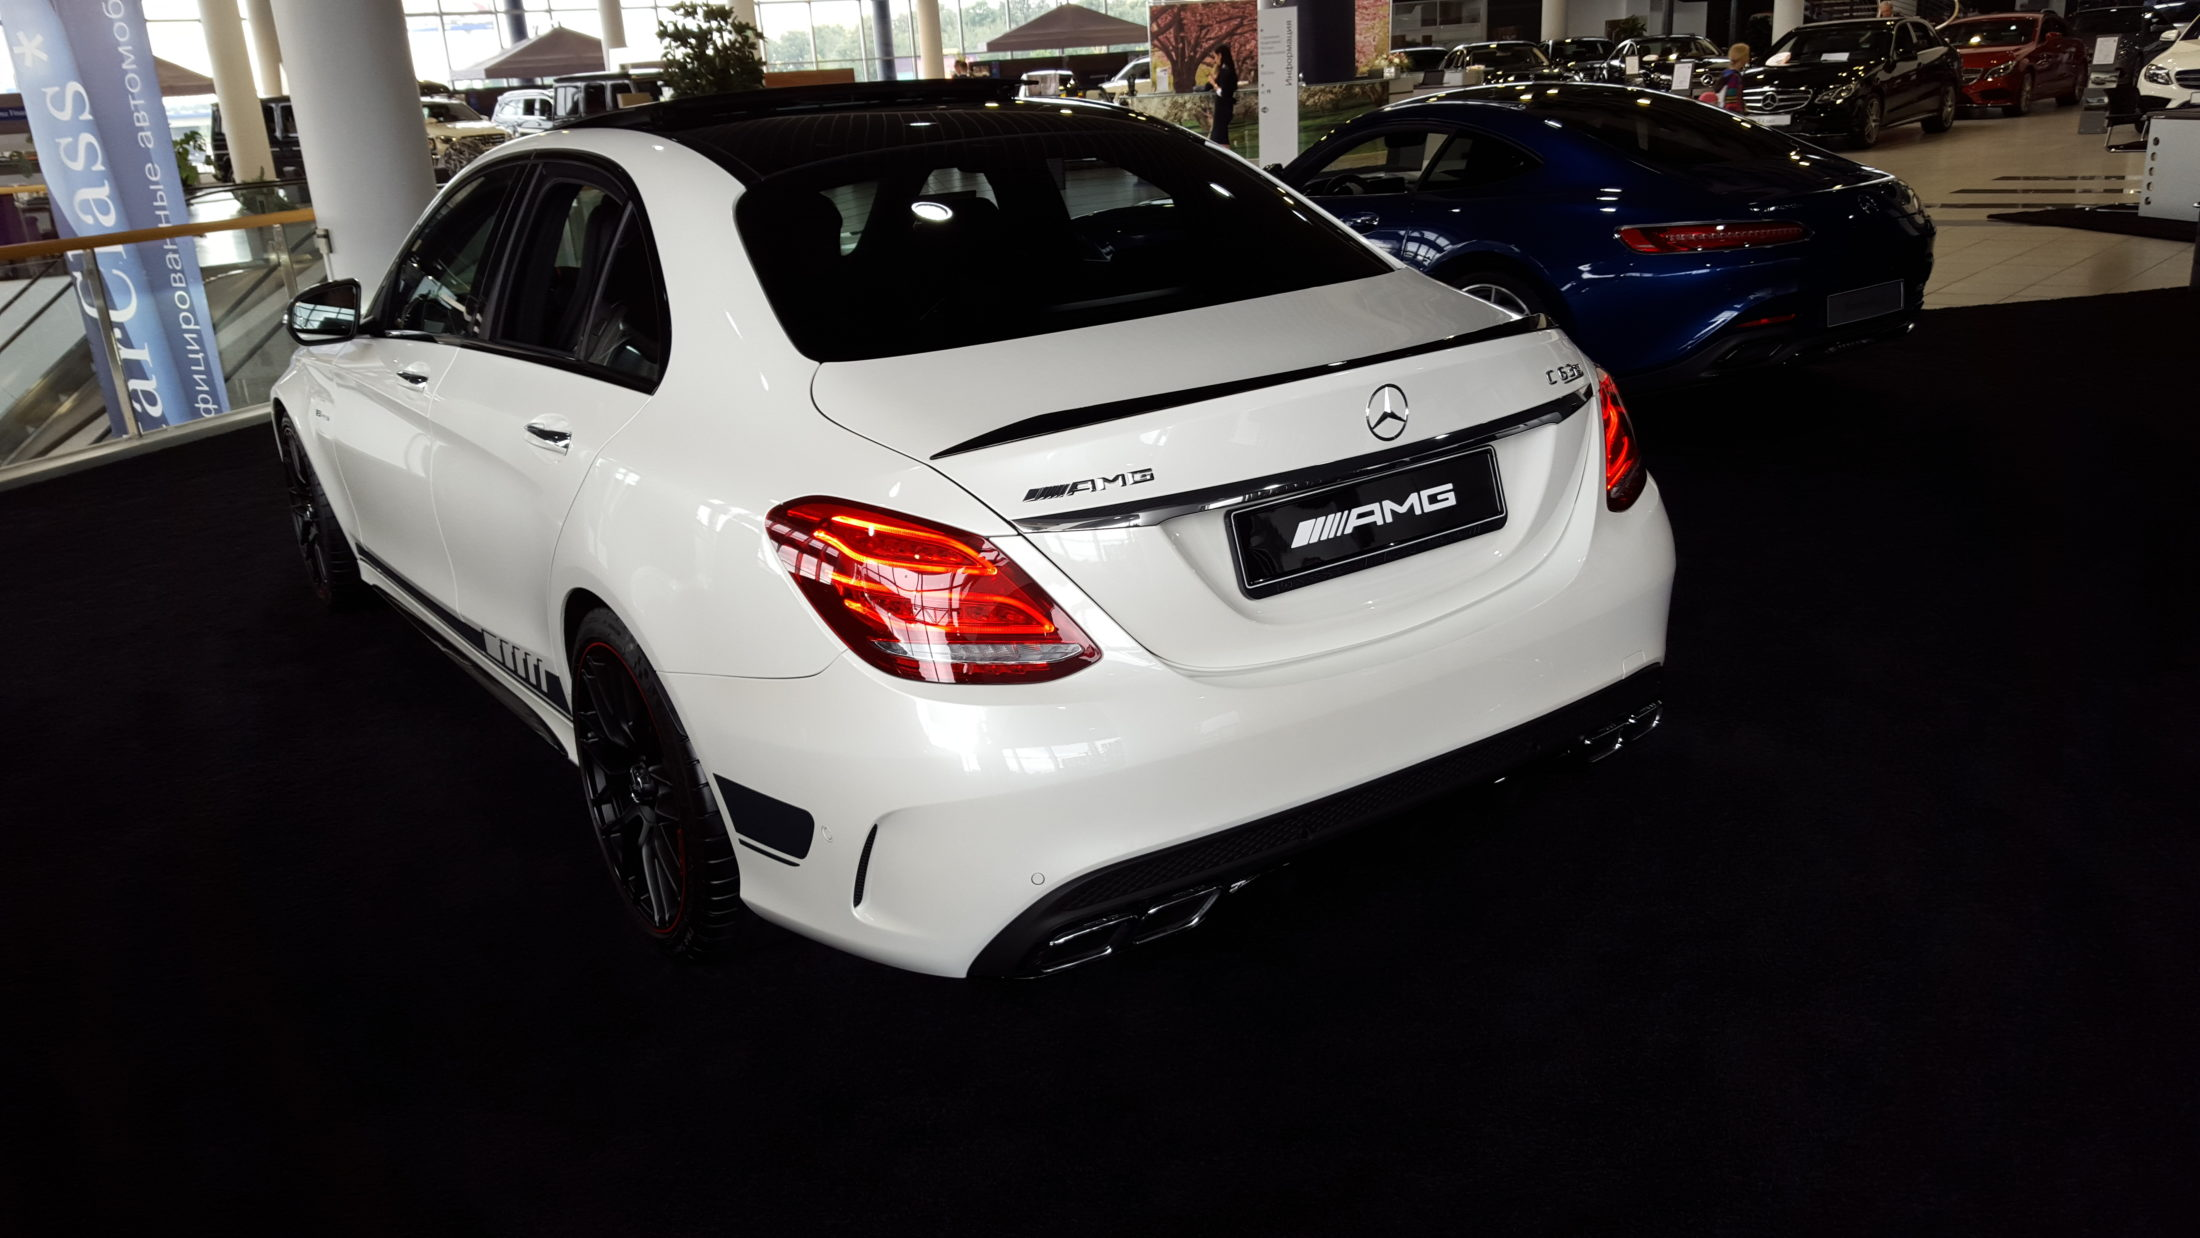 How I purchased C63 AMG by chance